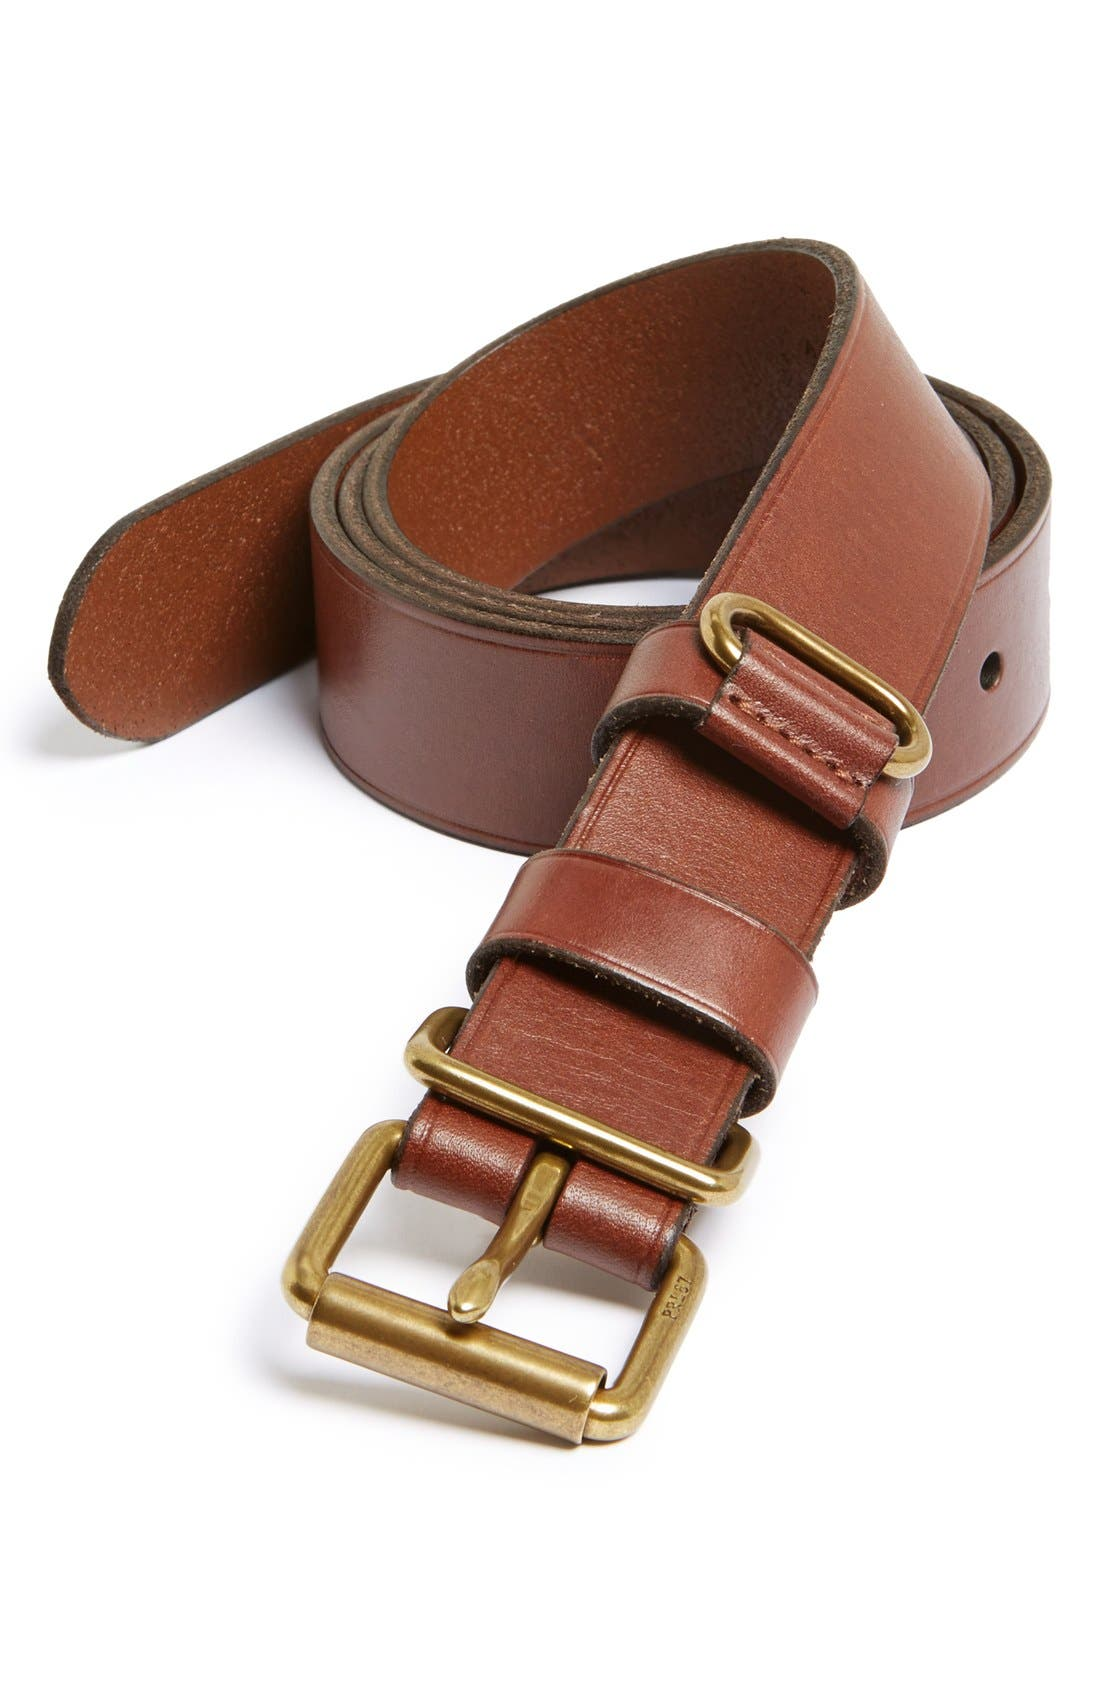 Main Image - Polo Ralph Lauren 'Suffolk' Leather Belt